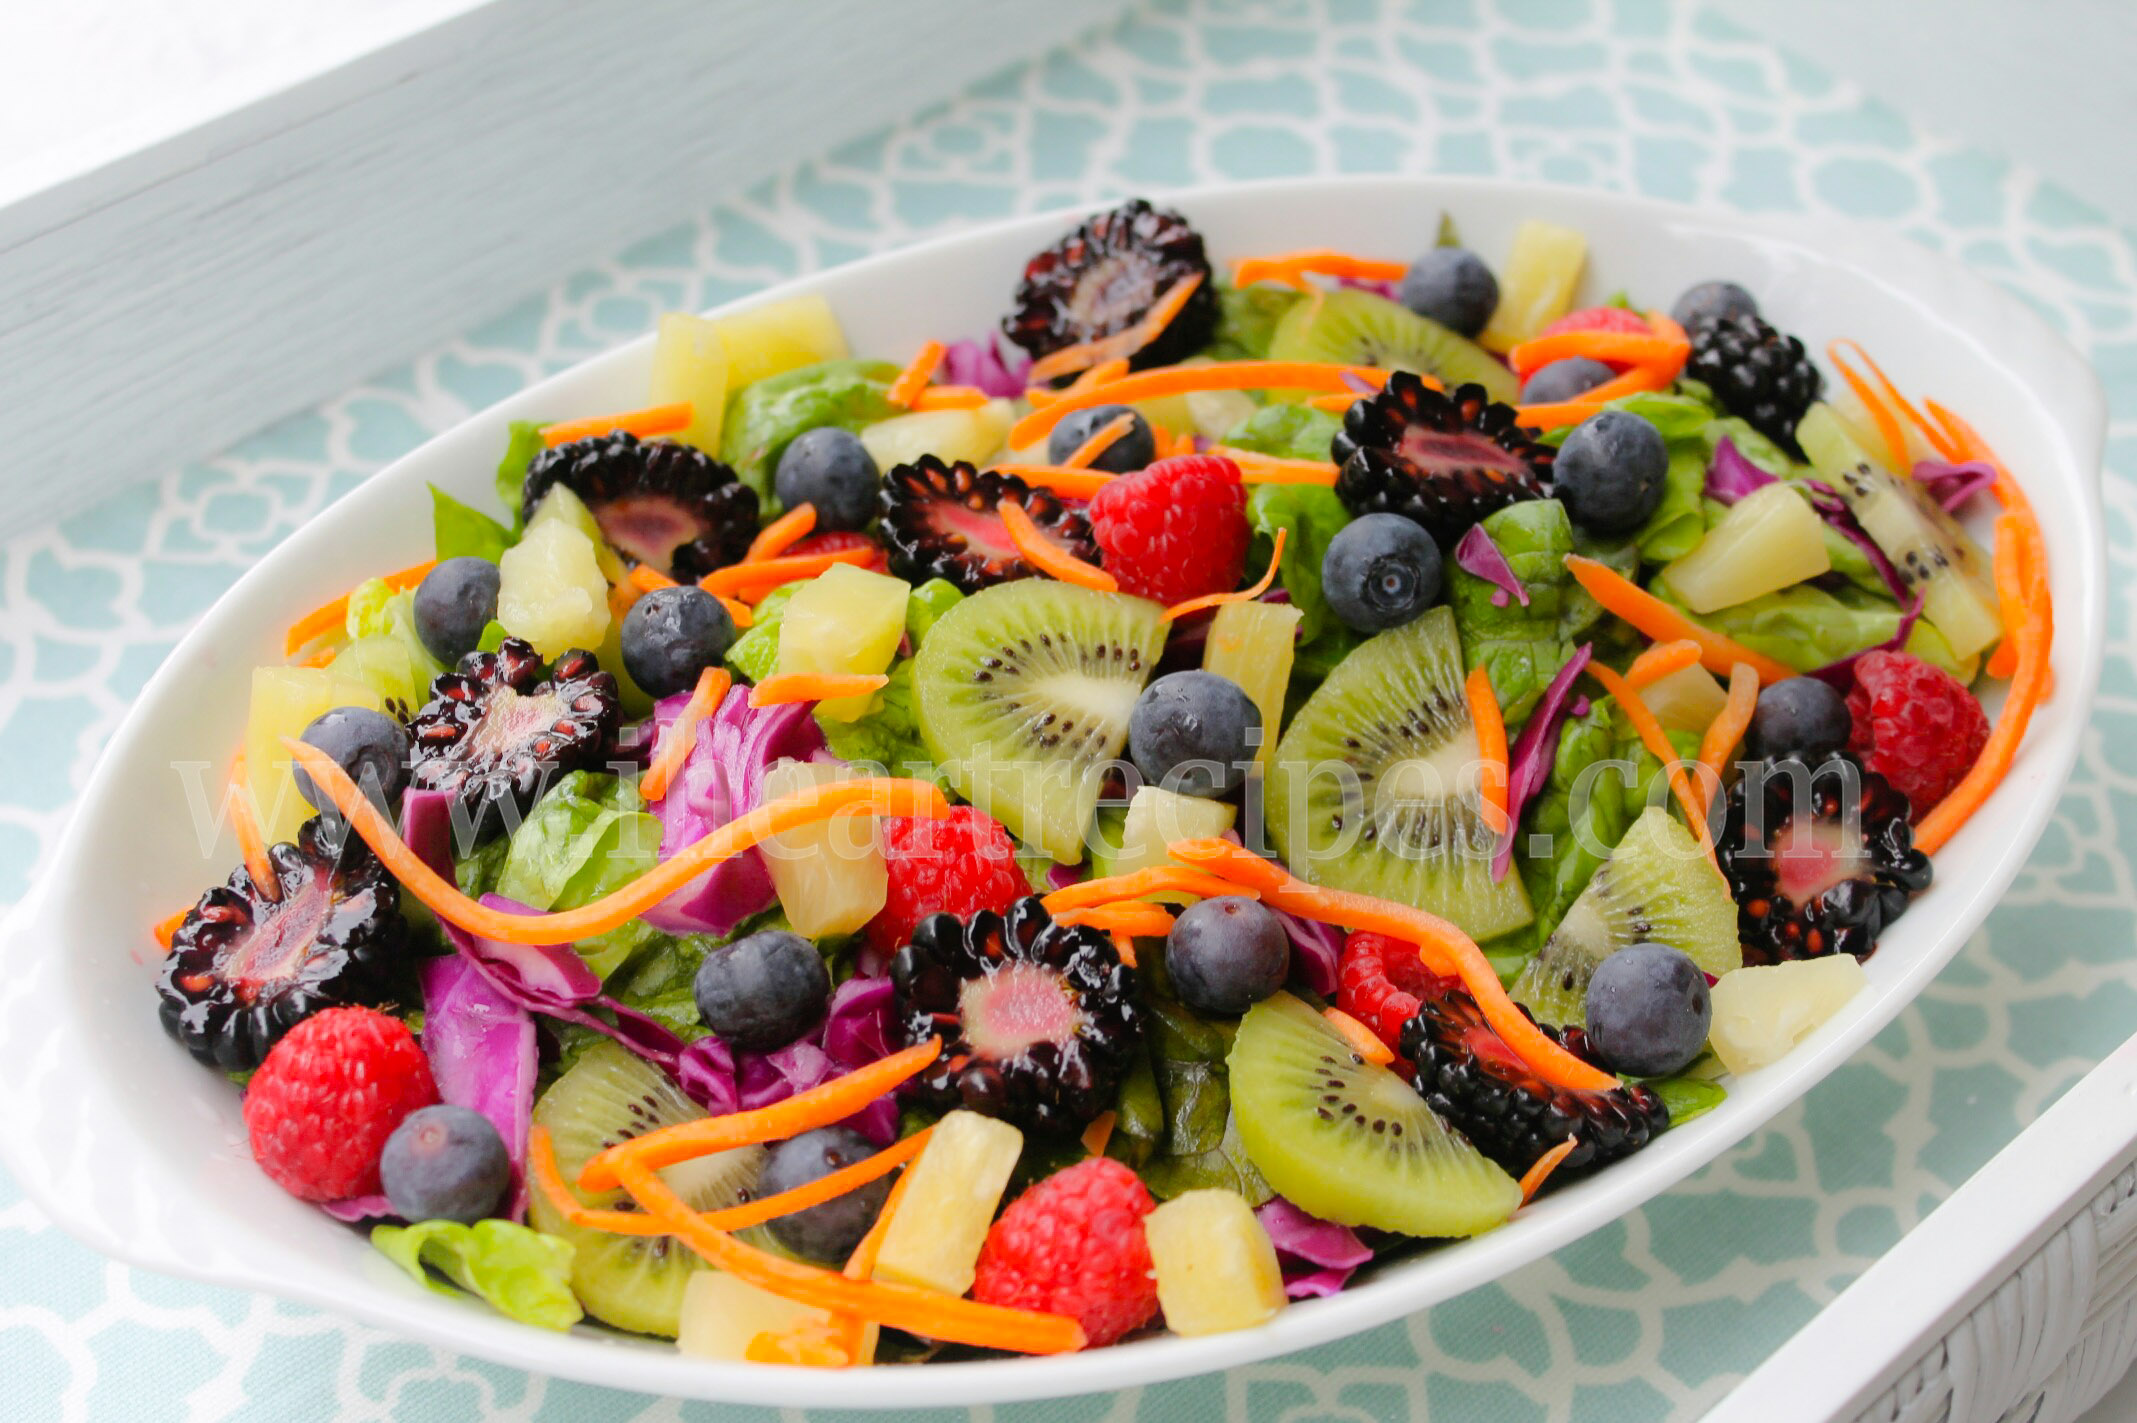 Nothing says spring quite like this fresh paradise spring salad with tons of fresh fruit